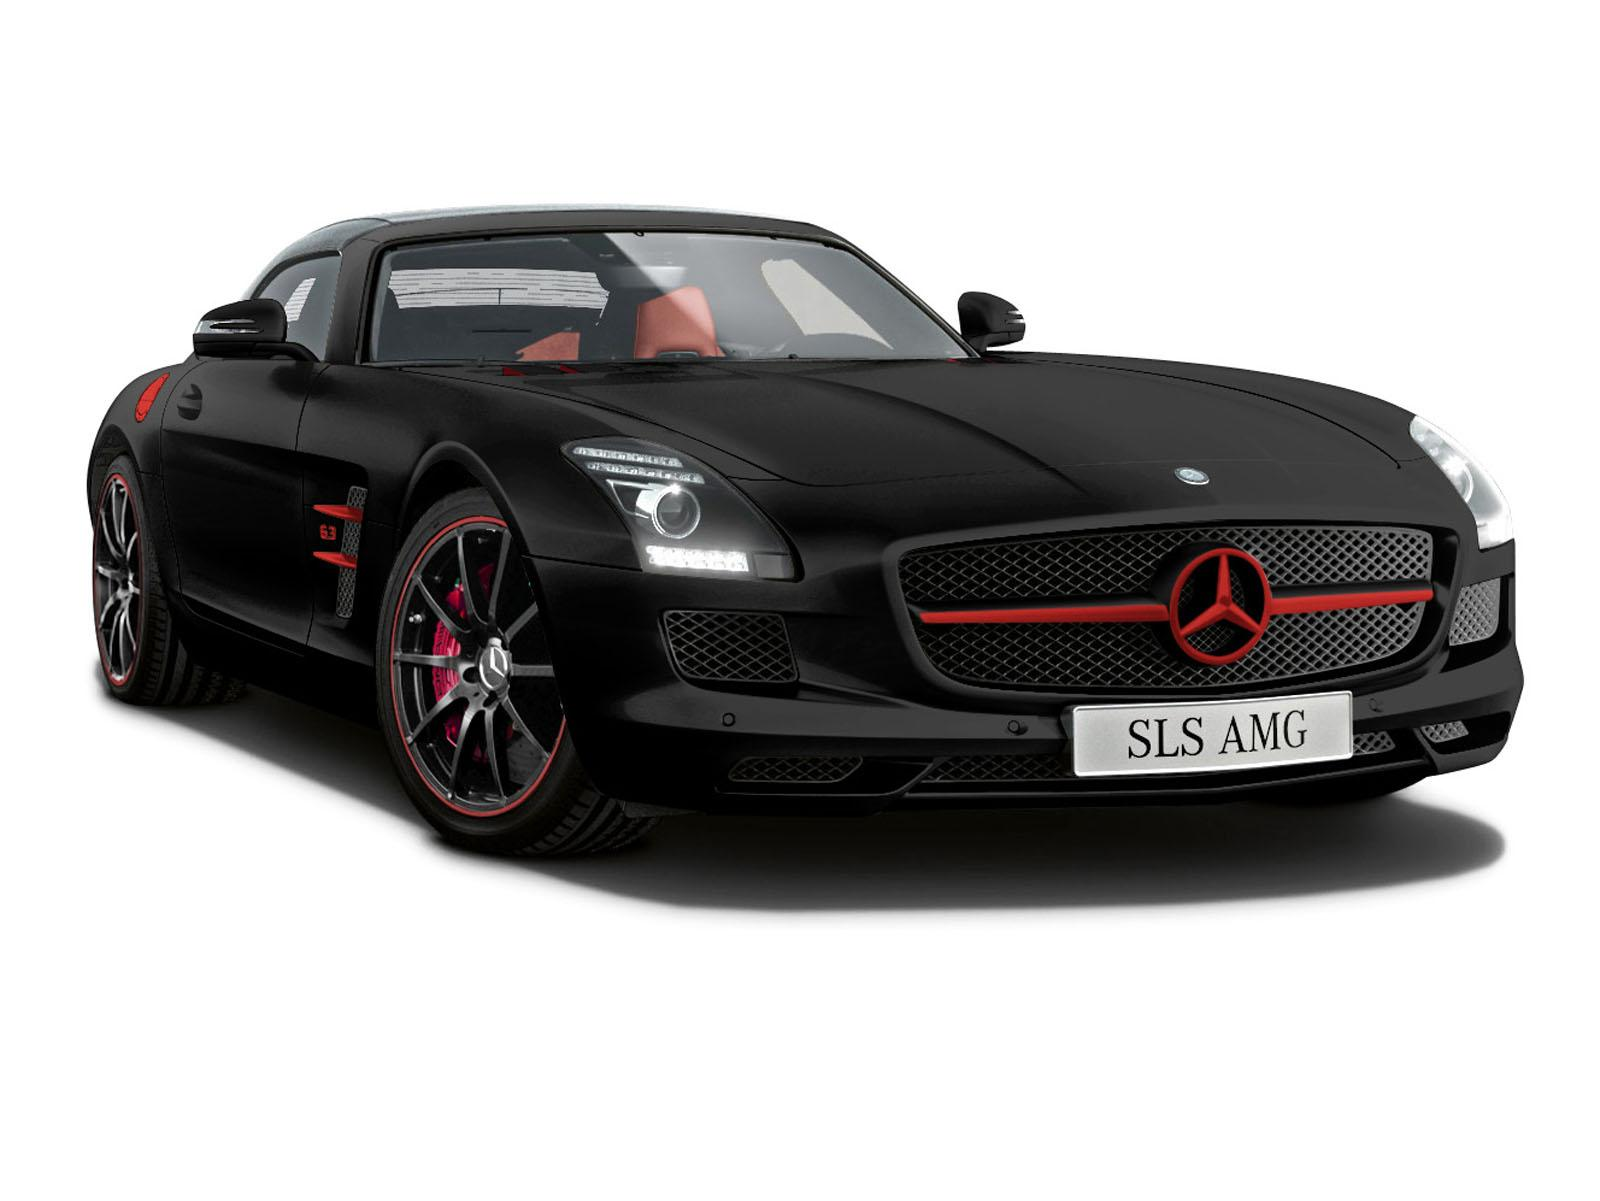 2012 mercedes benz sls amg matt limited edition. Cars Review. Best American Auto & Cars Review